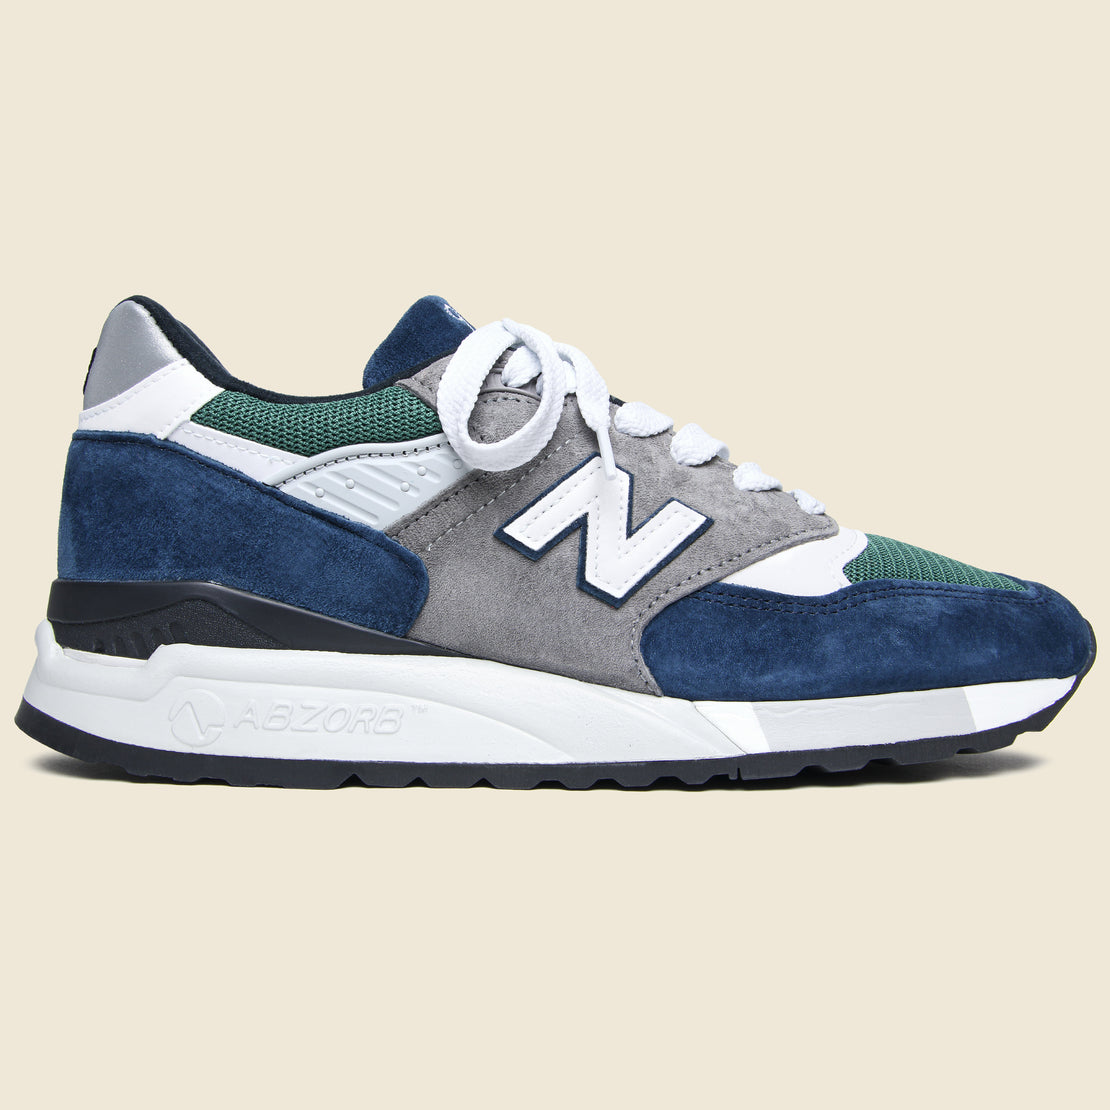 New Balance 998 Sneaker - Blue/Green